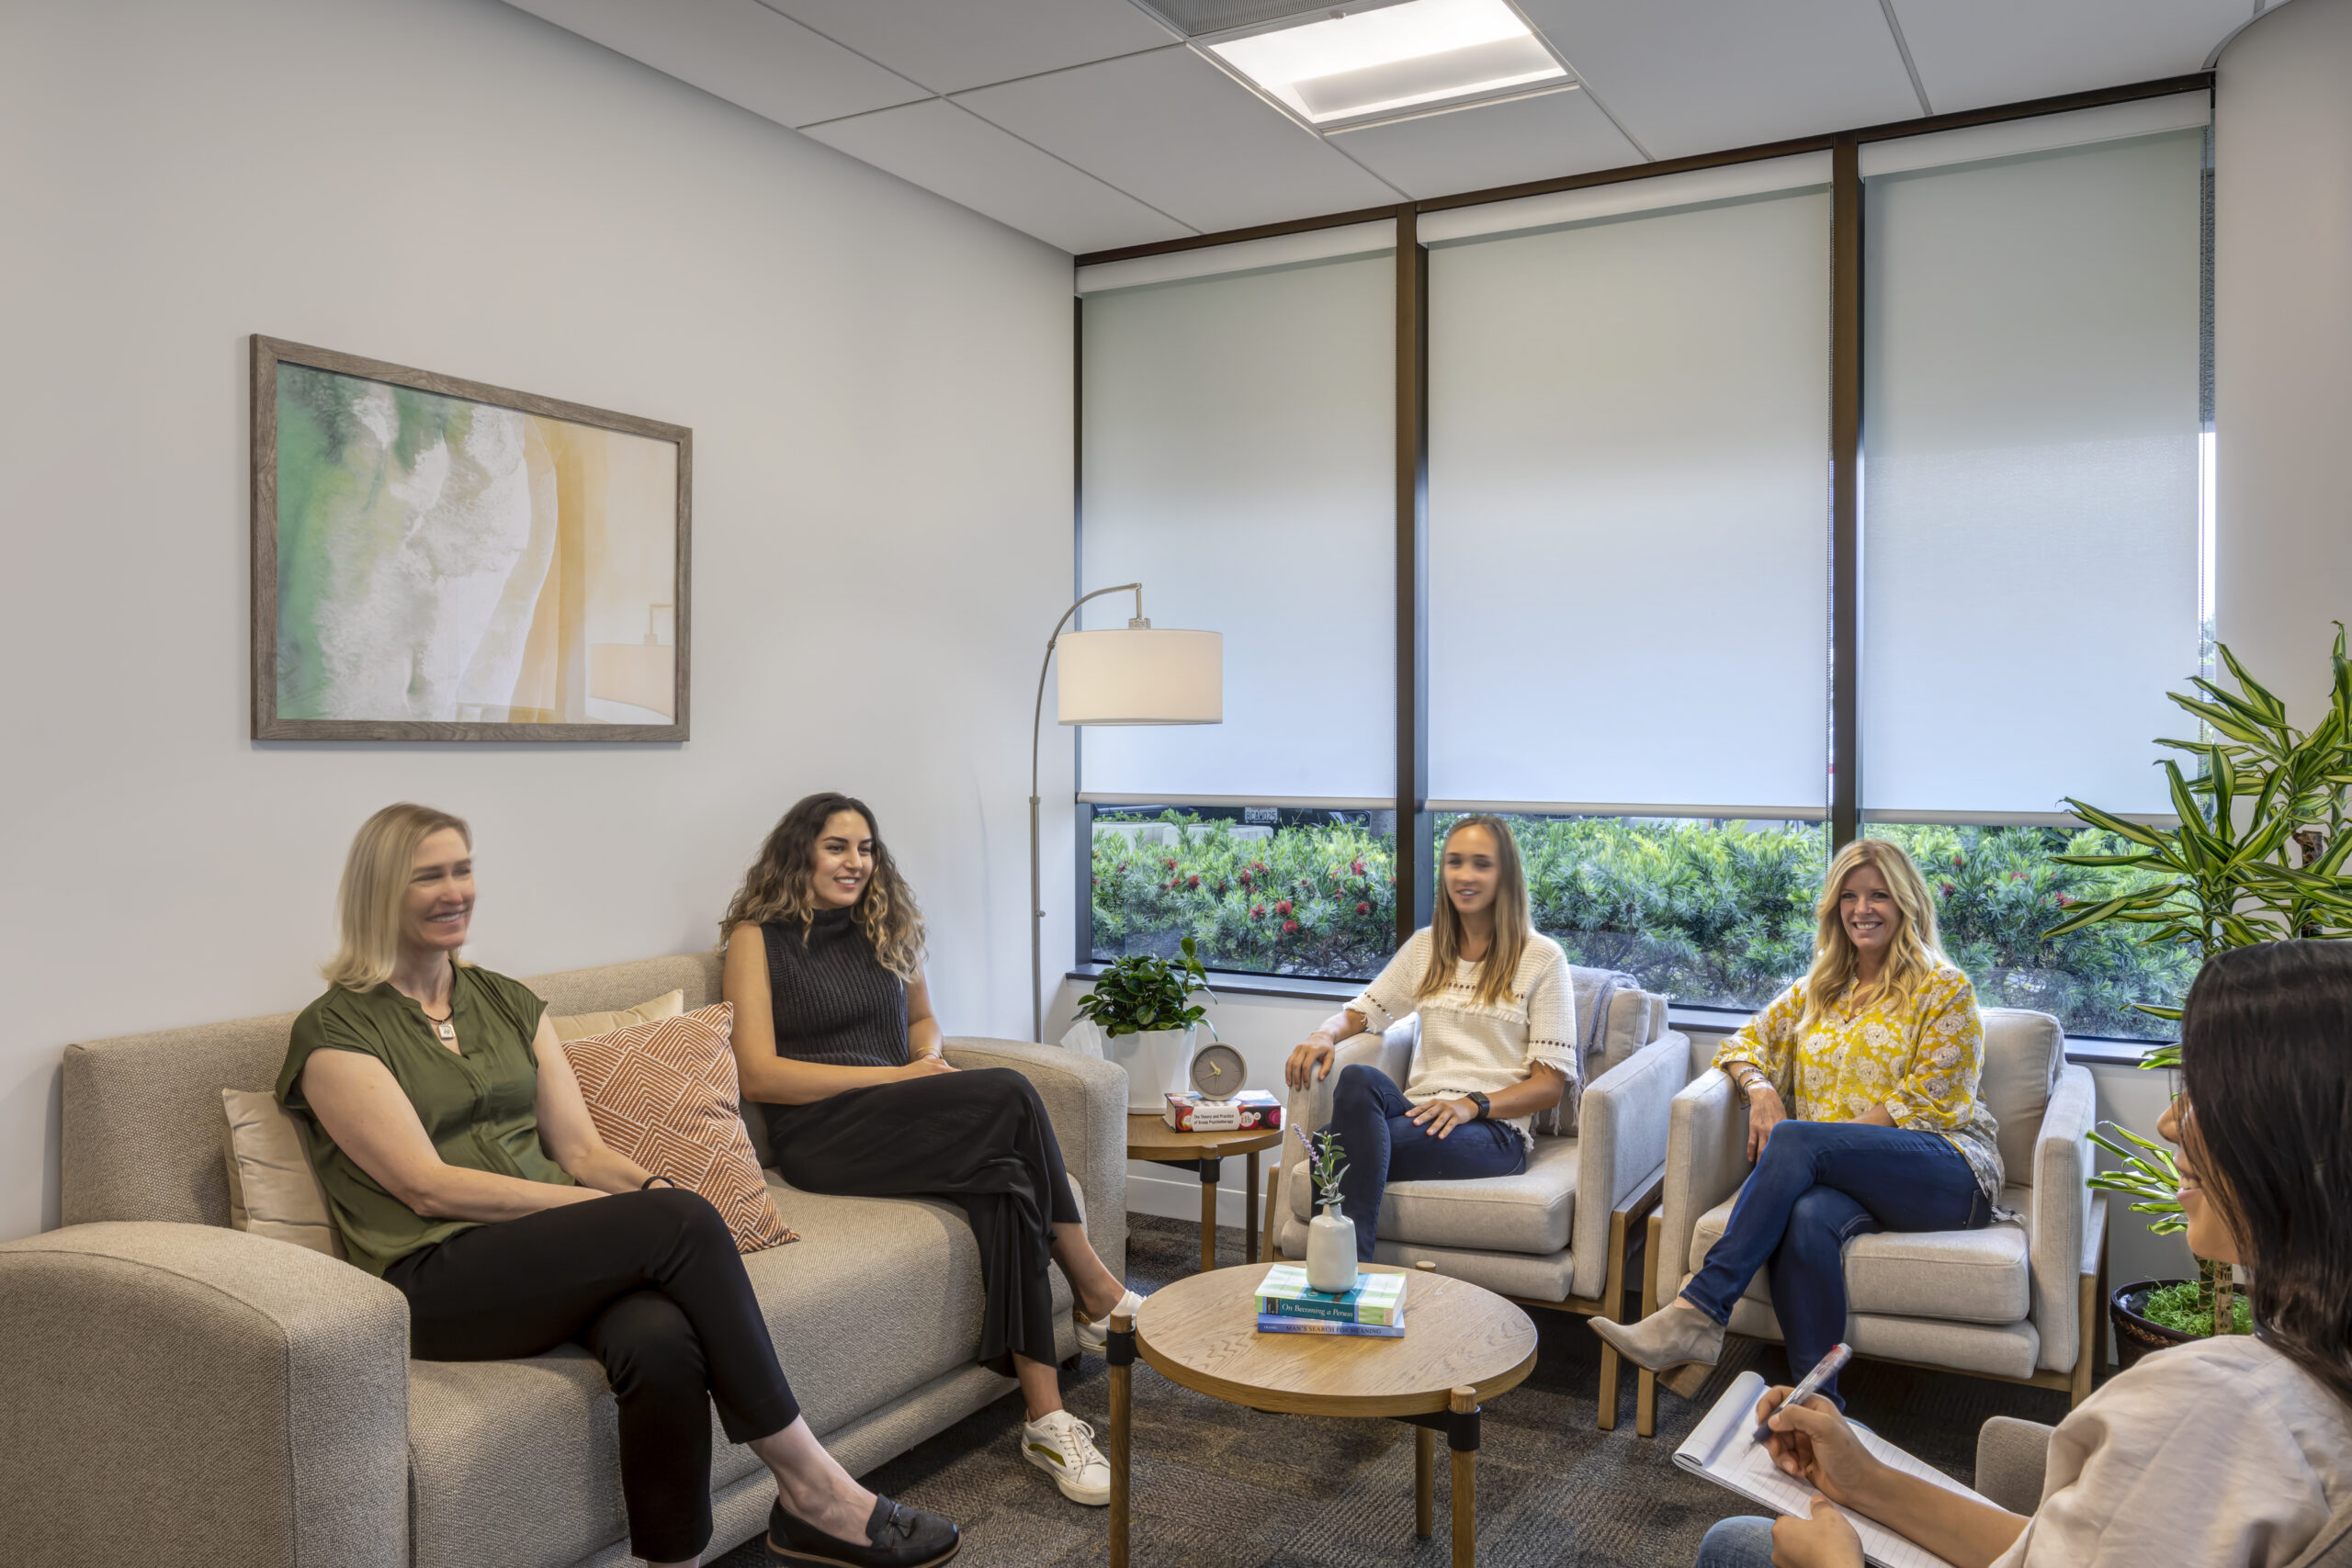 Group Therapy Room at Ethera Irvine